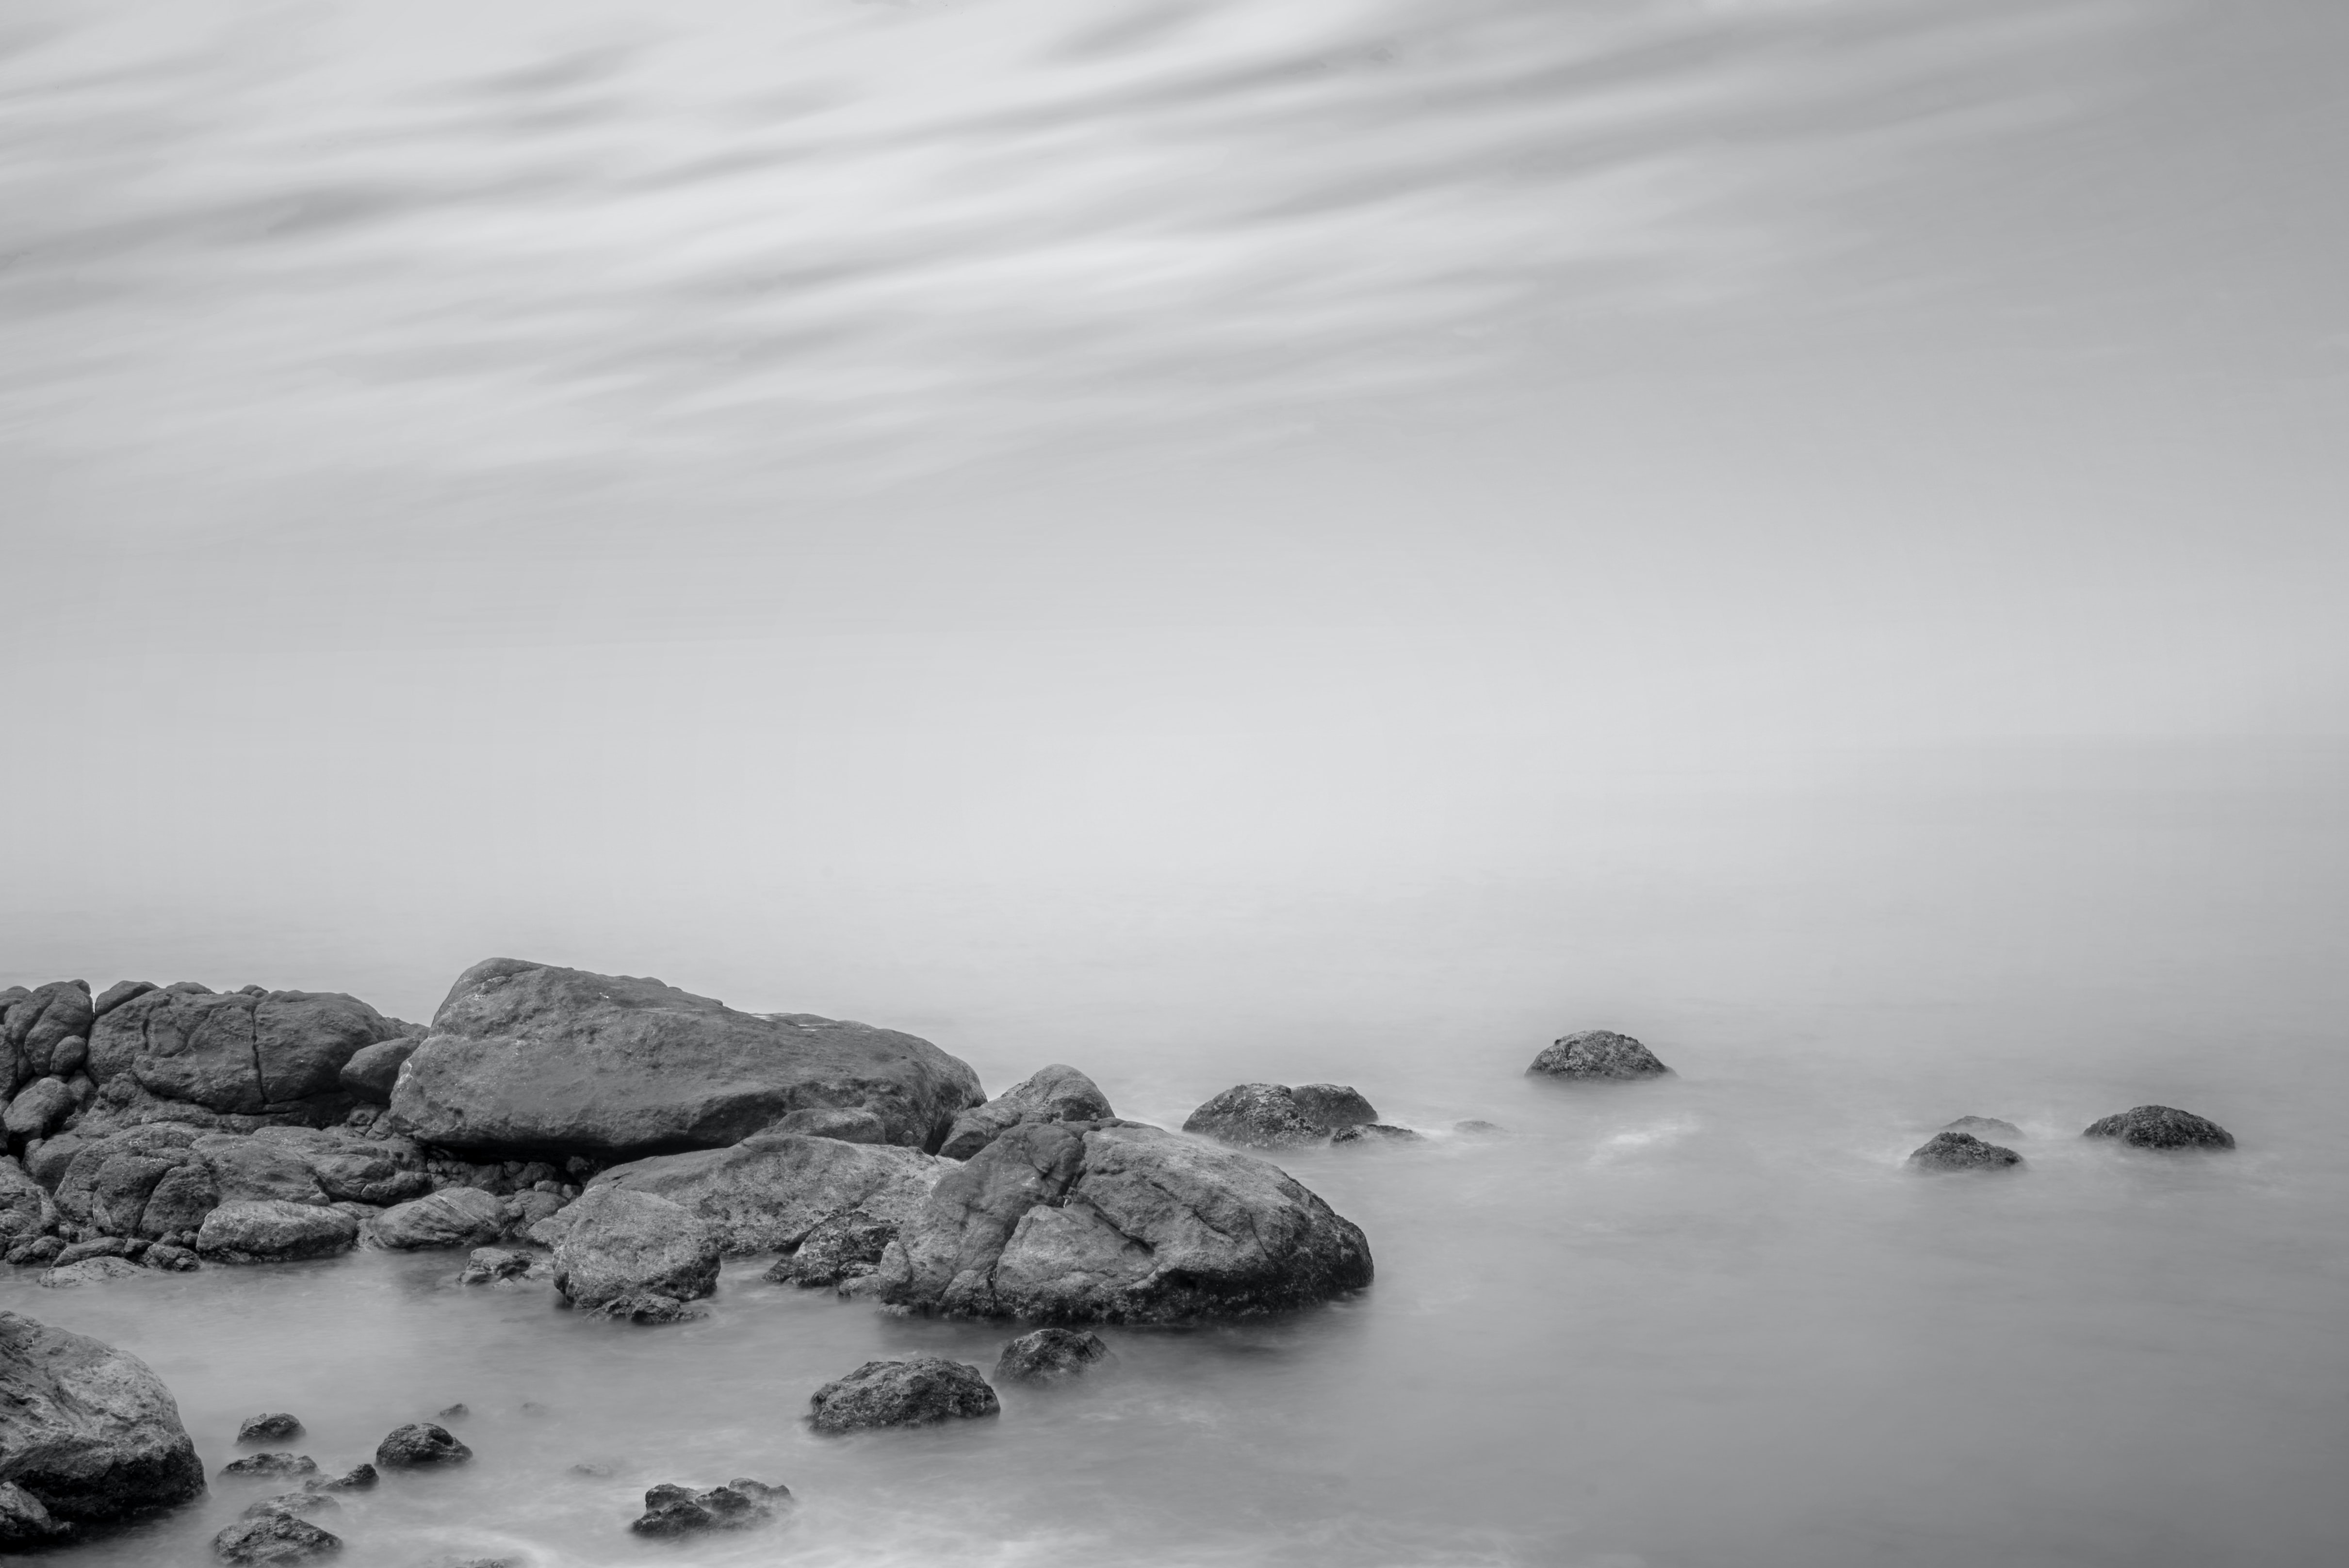 rocks beside body of water grayscale photography